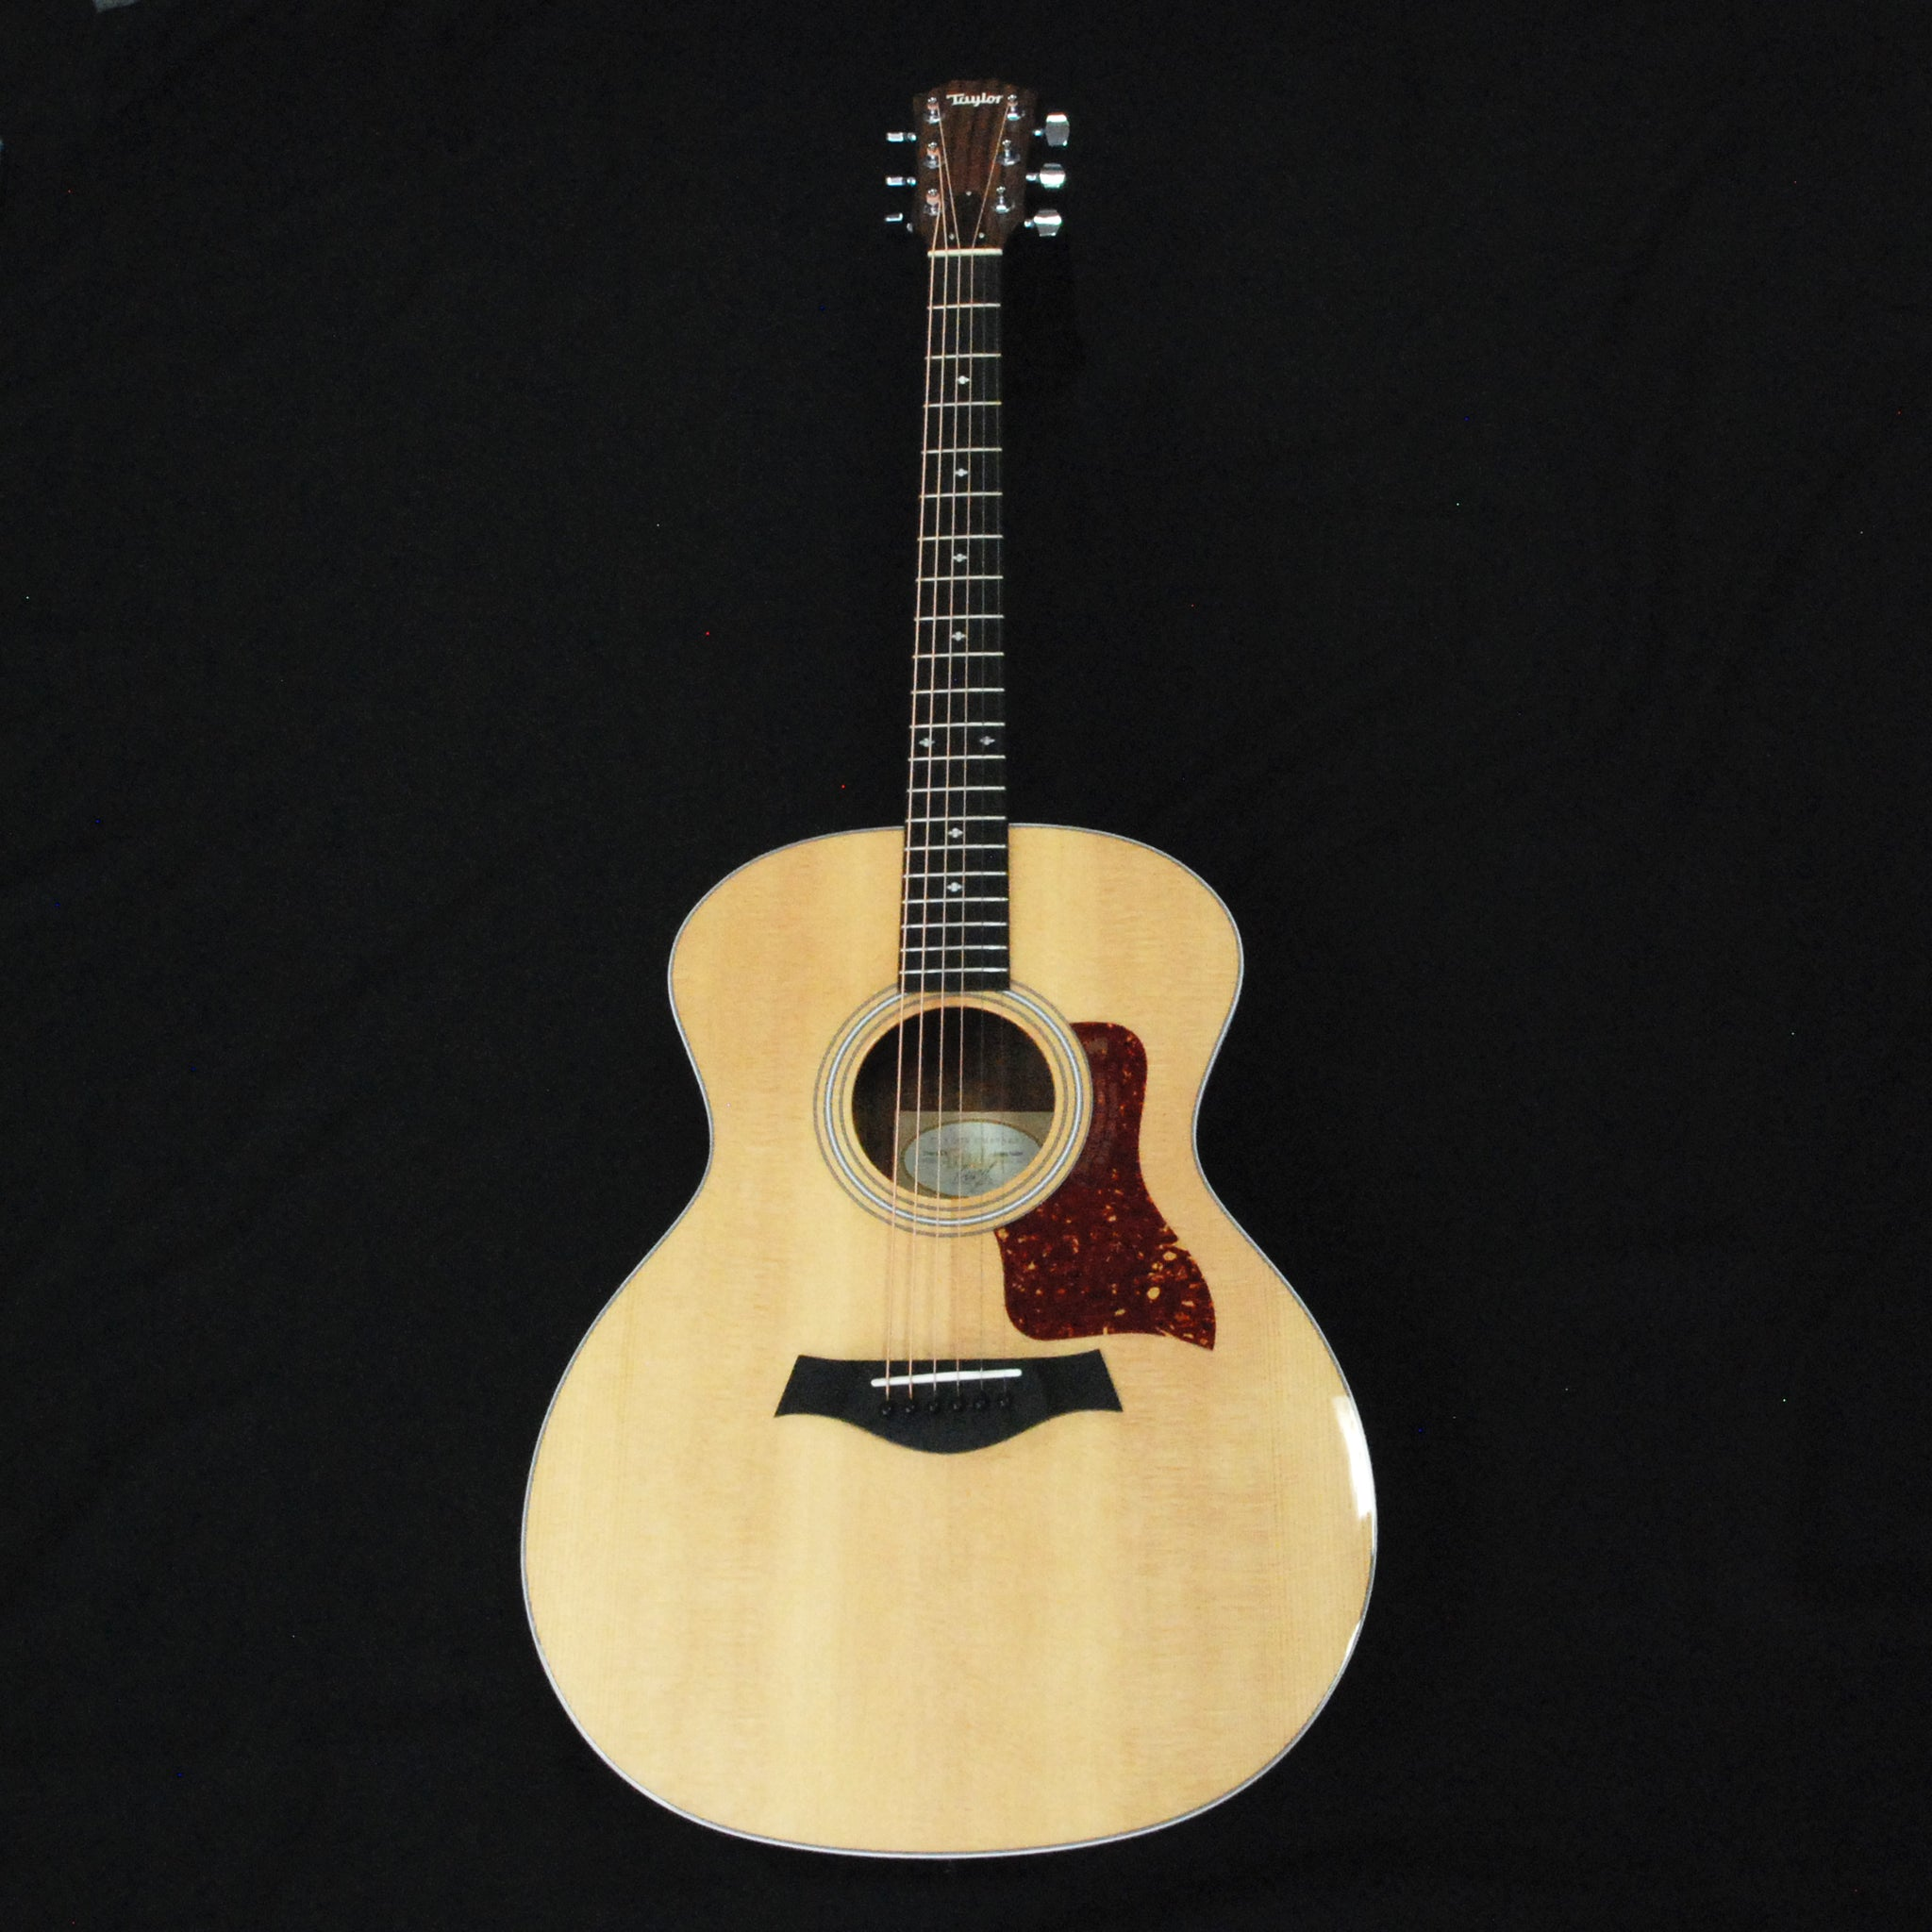 Shop online for Taylor 214e DLX Grand Auditorium Acoustic/Electric Guitar today.  Now available for purchase from Midlothian Music of Orland Park, Illinois, USA